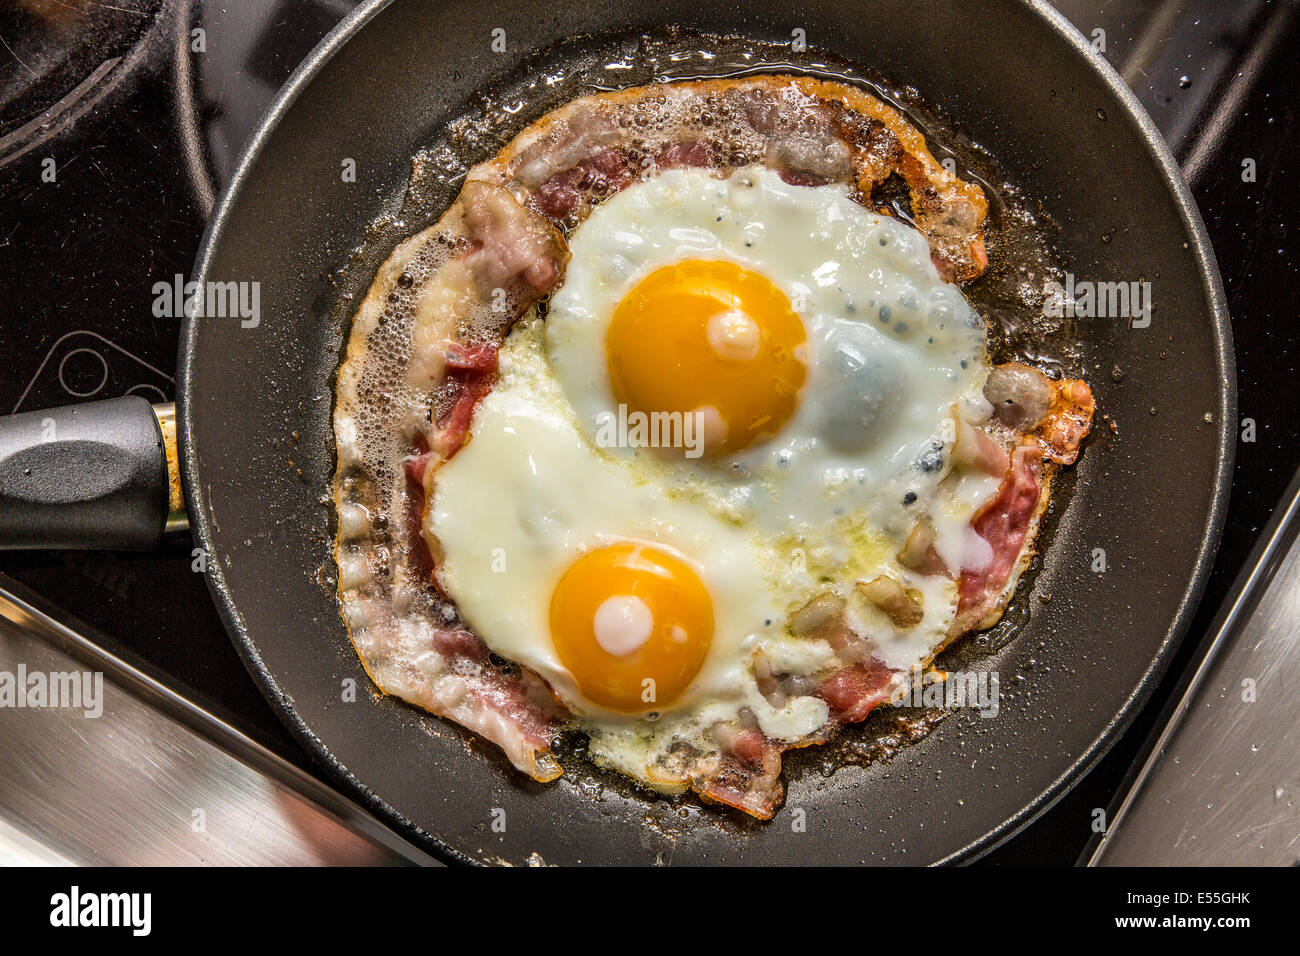 Fried eggs and bacon in a frying pan, breakfast, - Stock Image